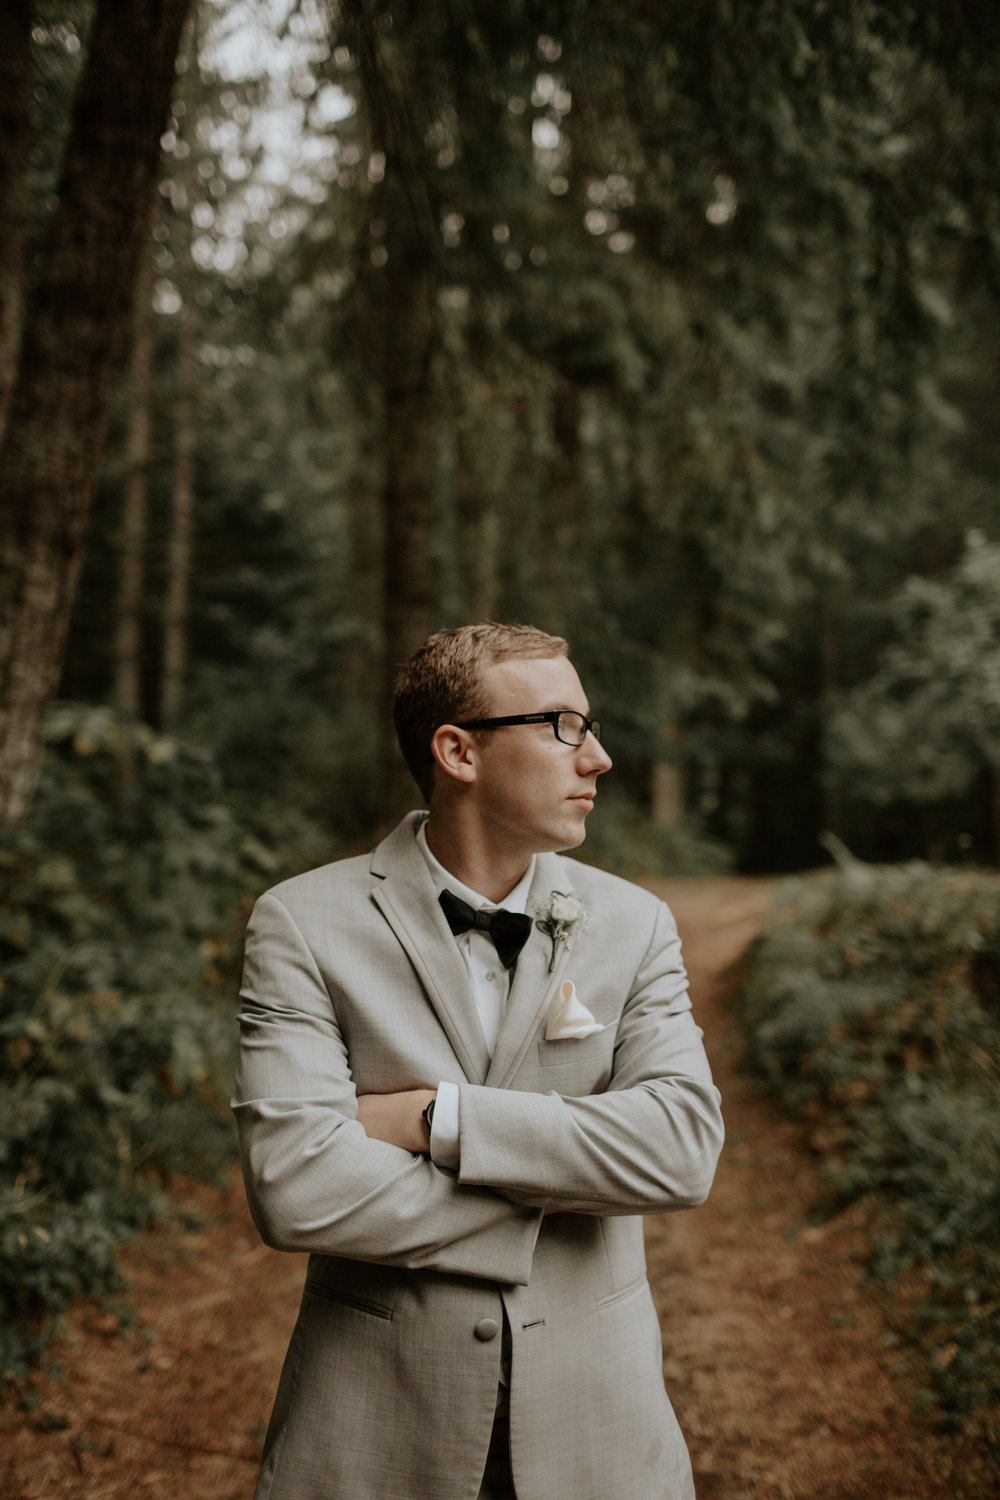 Port-Angeles-elopement-wedding-pnw-olympic-peninsula-photographer-portrait-kayladawnphoto-kayla-dawn-photography-olympic-national-park-22.jpg